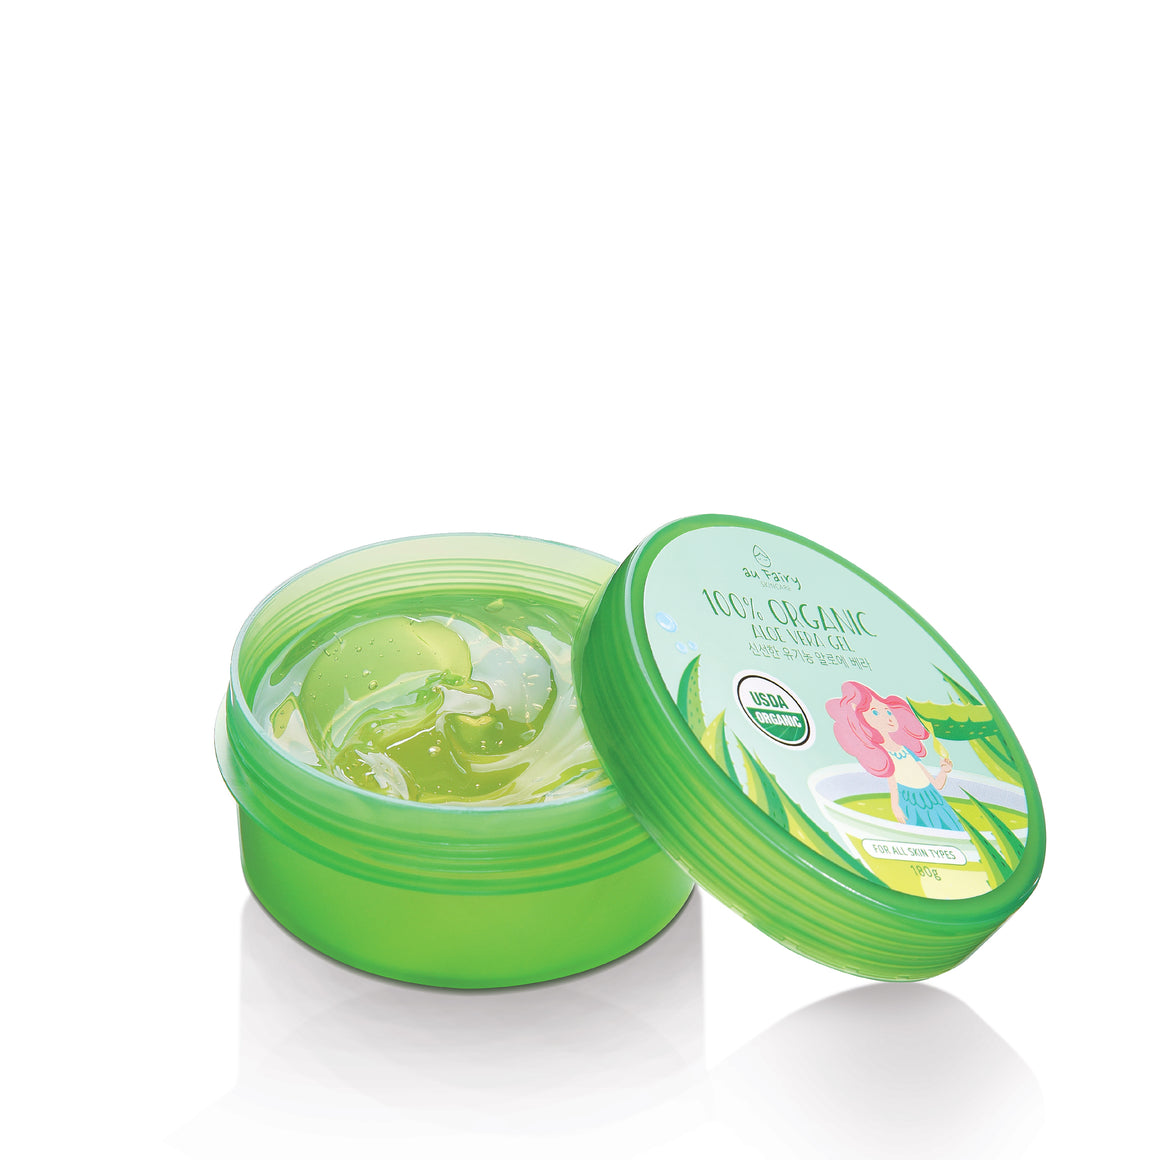 [BUNDLE PACK] AUFAIRY Soothing Spell 100% Organic Aloe Vera Gel : 2 PCS - Yoskin